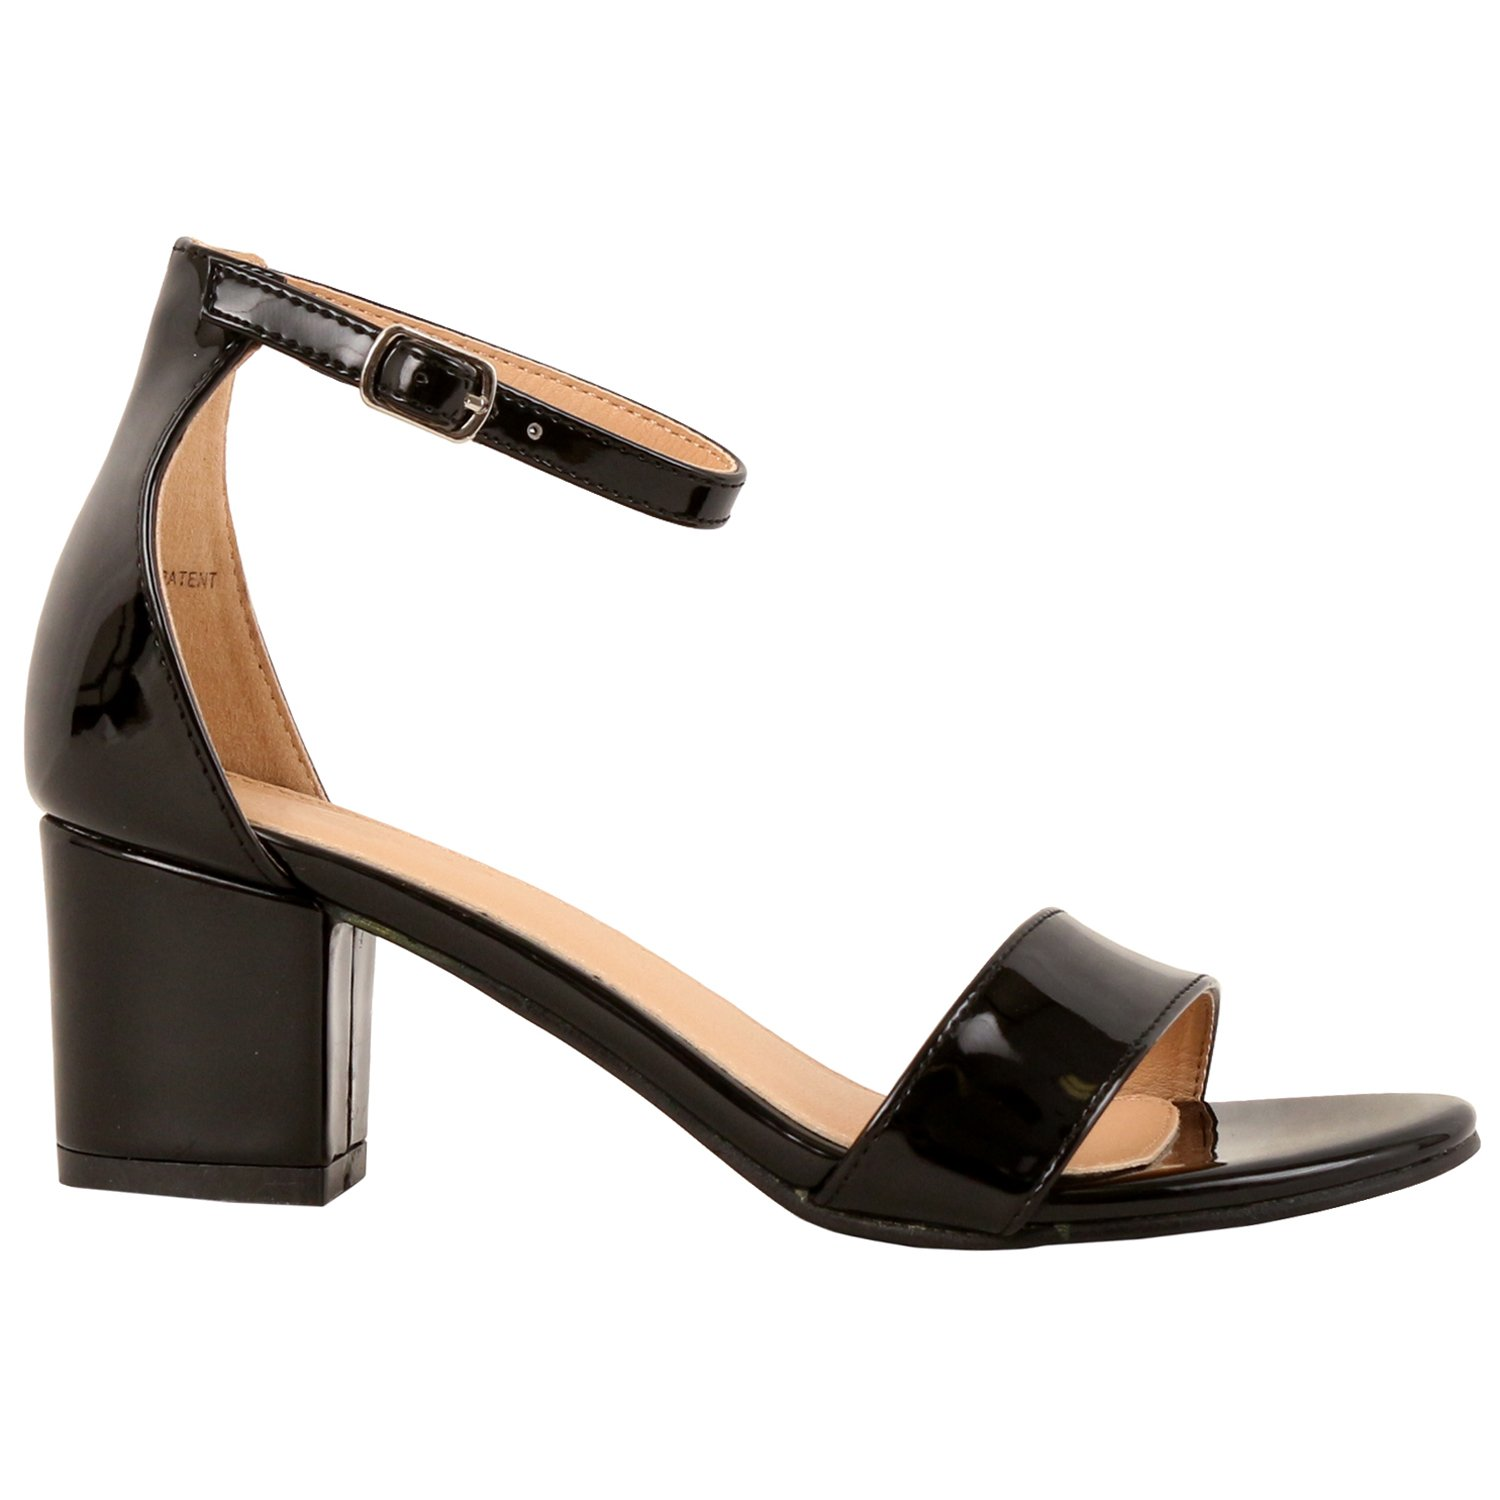 Guilty Shoes - Womens Ankle Strap Single Band Sandals - Low Chunky Block Comfortable Office Heeled Sandals, 07 Black Pat, 9 B(M) US